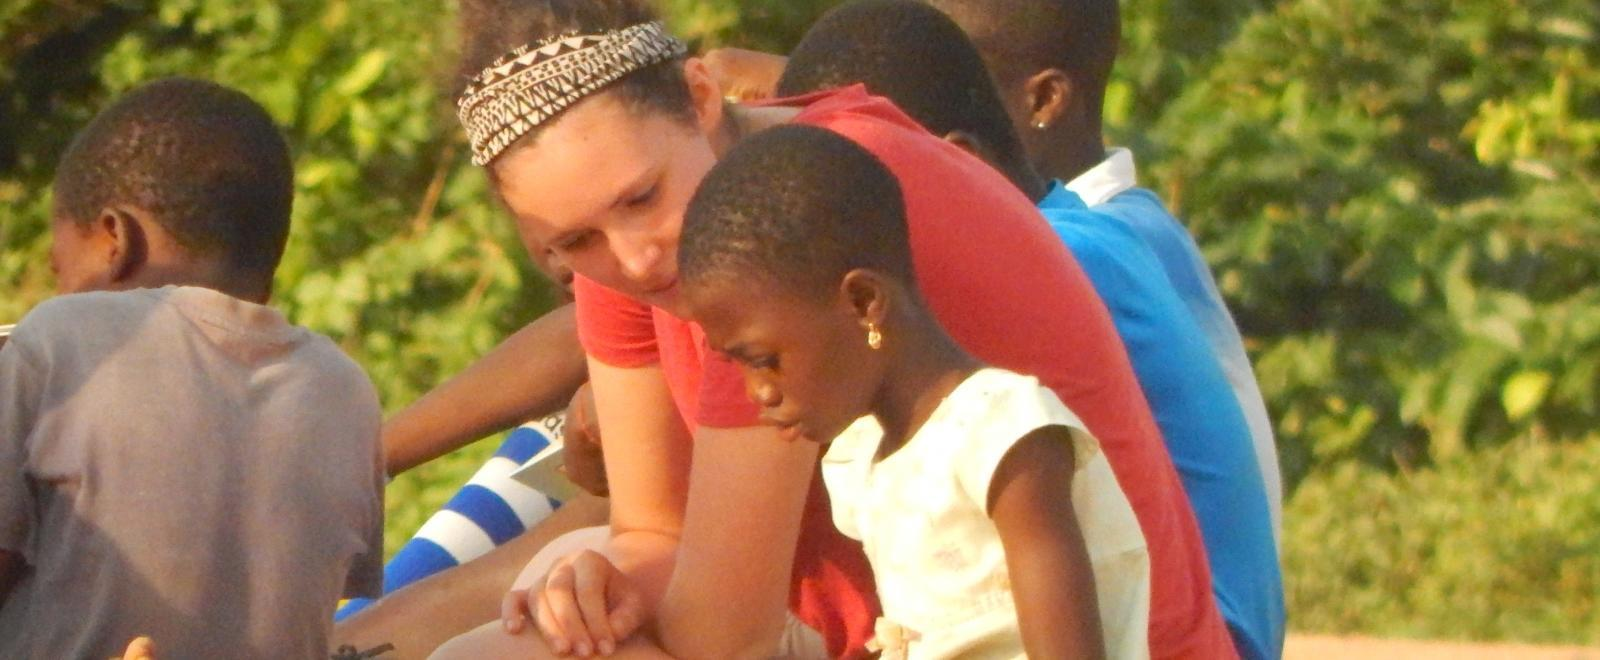 A Projects Abroad intern gains social work experience in Ghana by working through activities with a child.